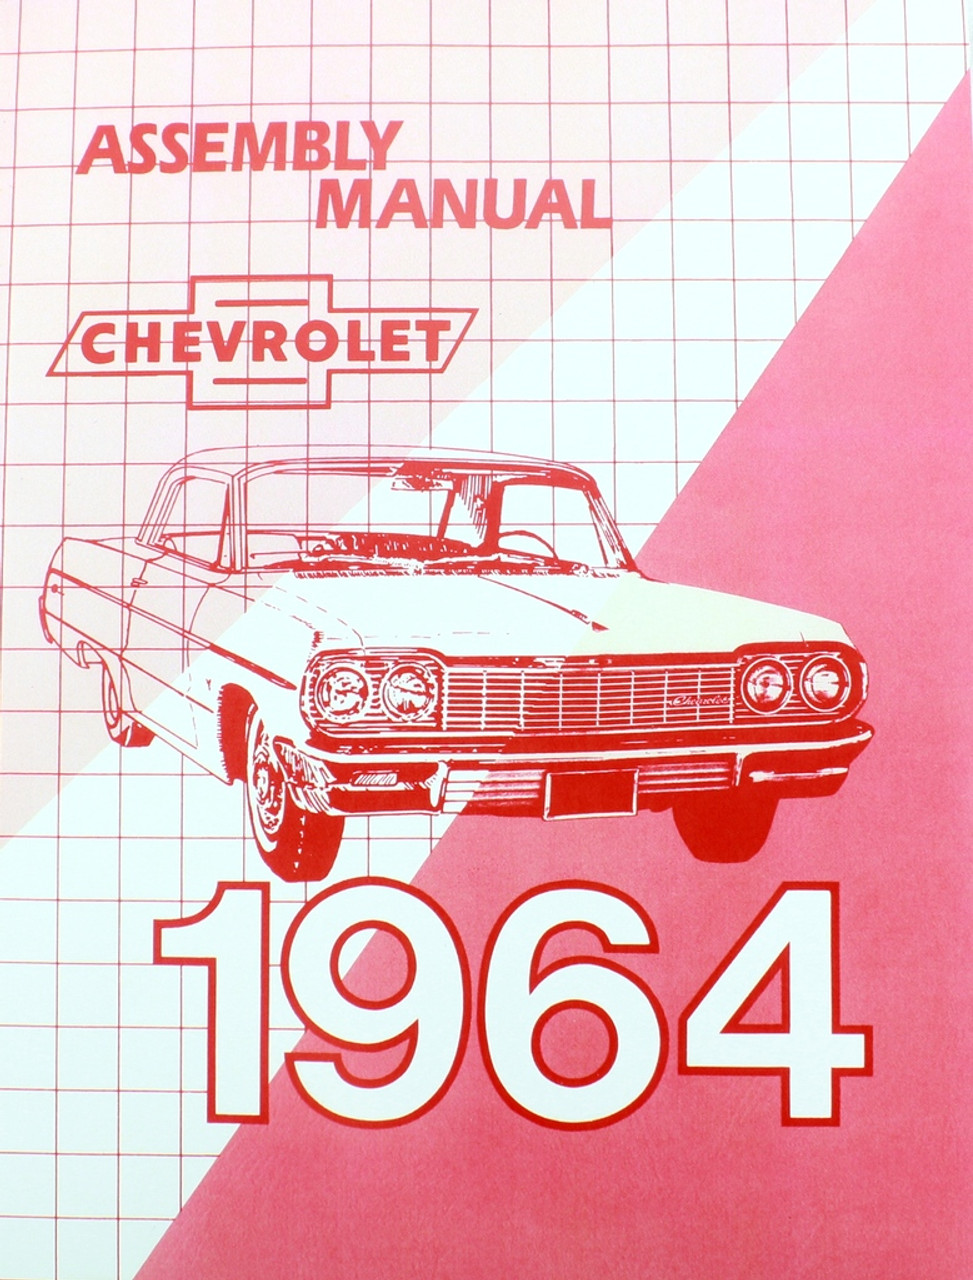 64 1964 Chevy Impala Bel Air Biscayne Factory Assembly Manual